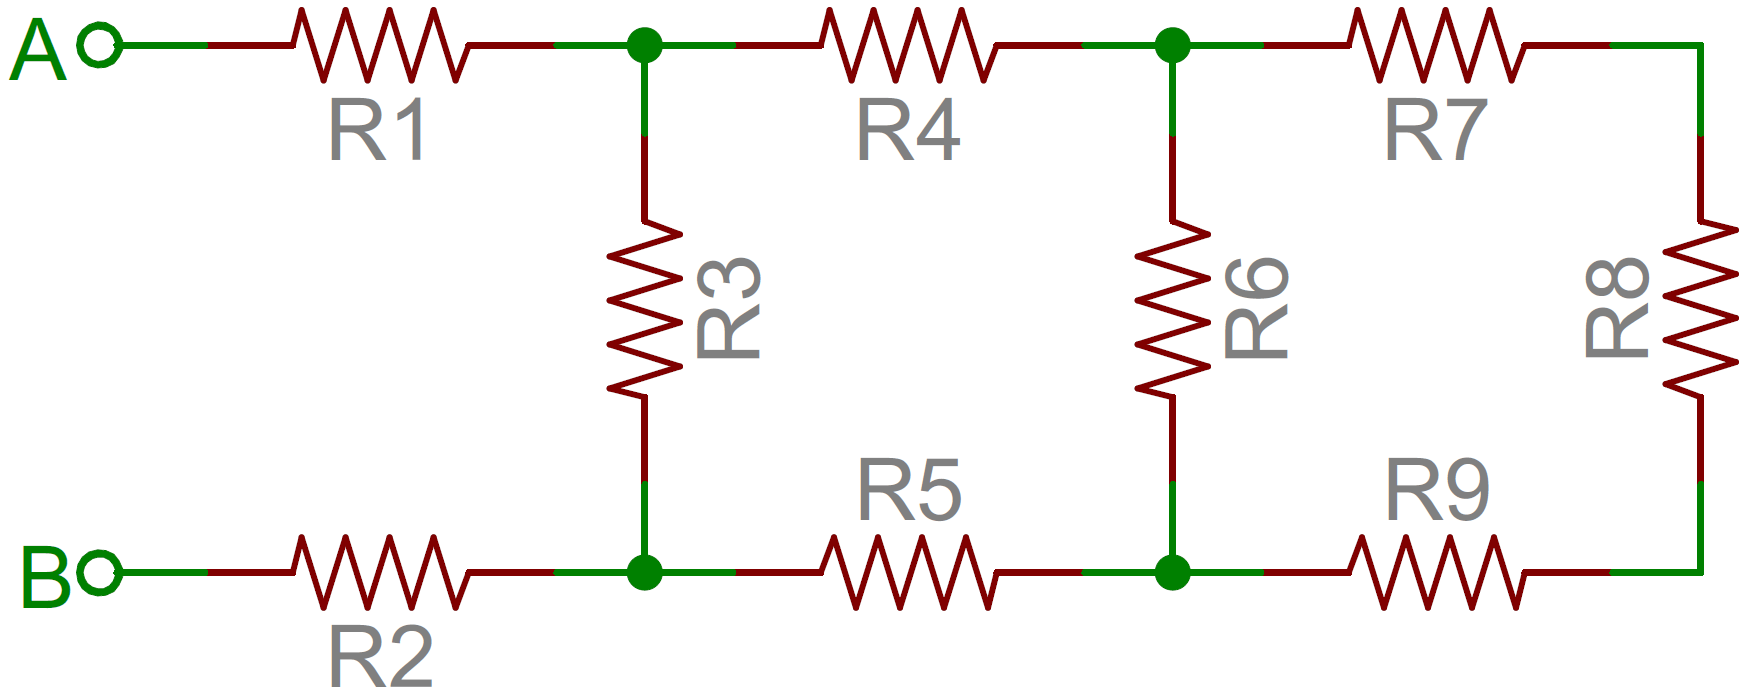 resistor circuit diagram fender stratocaster noiseless pickup wiring resistors learn sparkfun com an example of a network